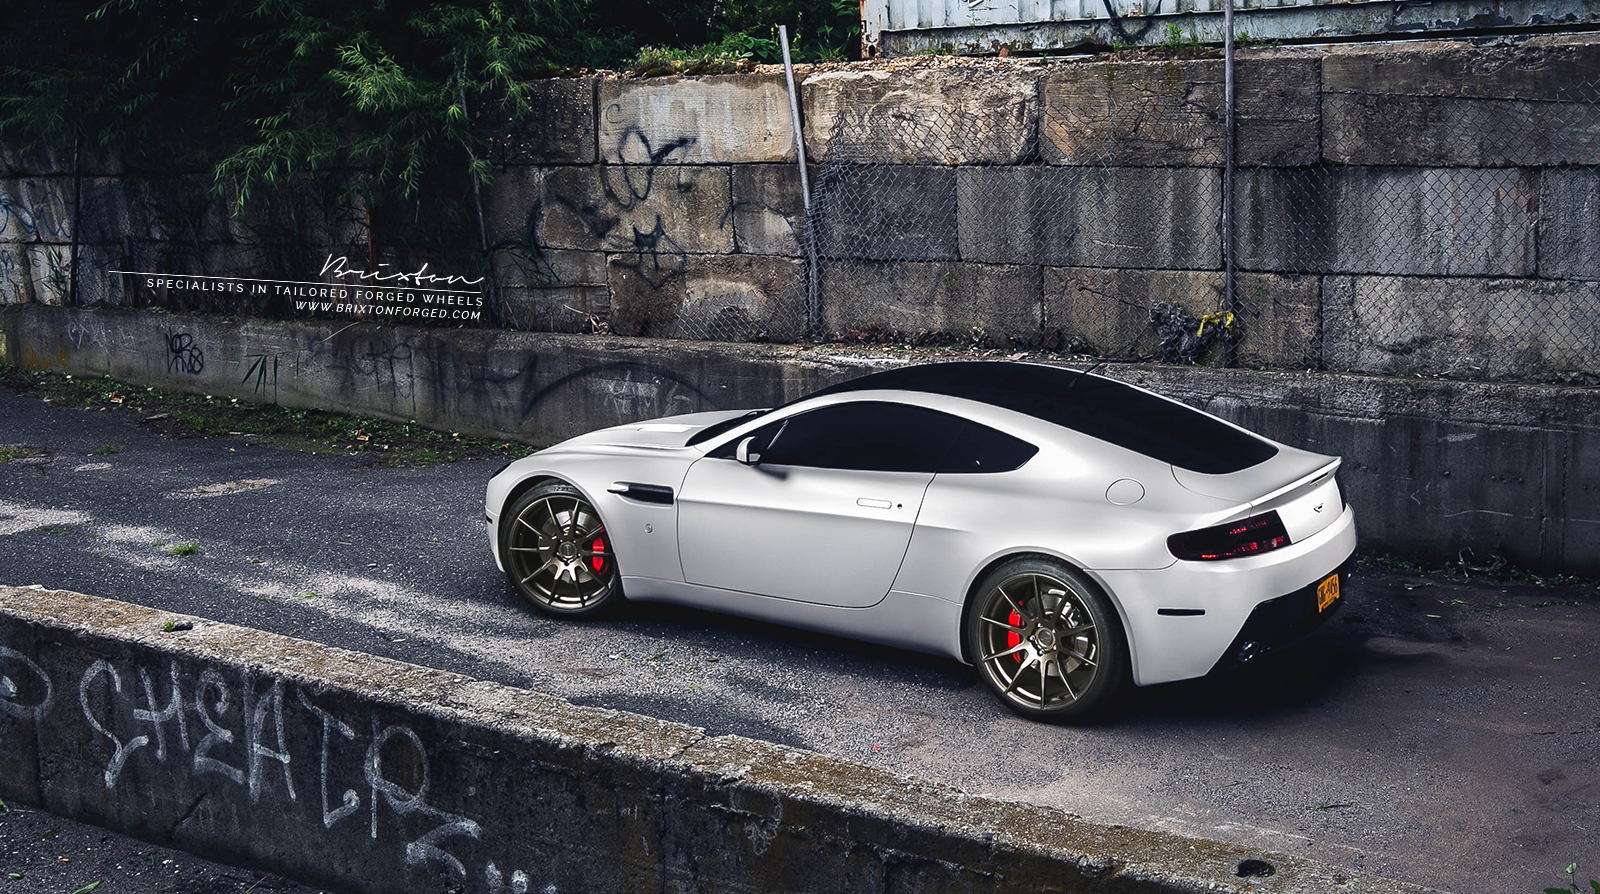 Et Photo 4 Aston Martin V8 Vantage Custom Wheels Brixton Forged R